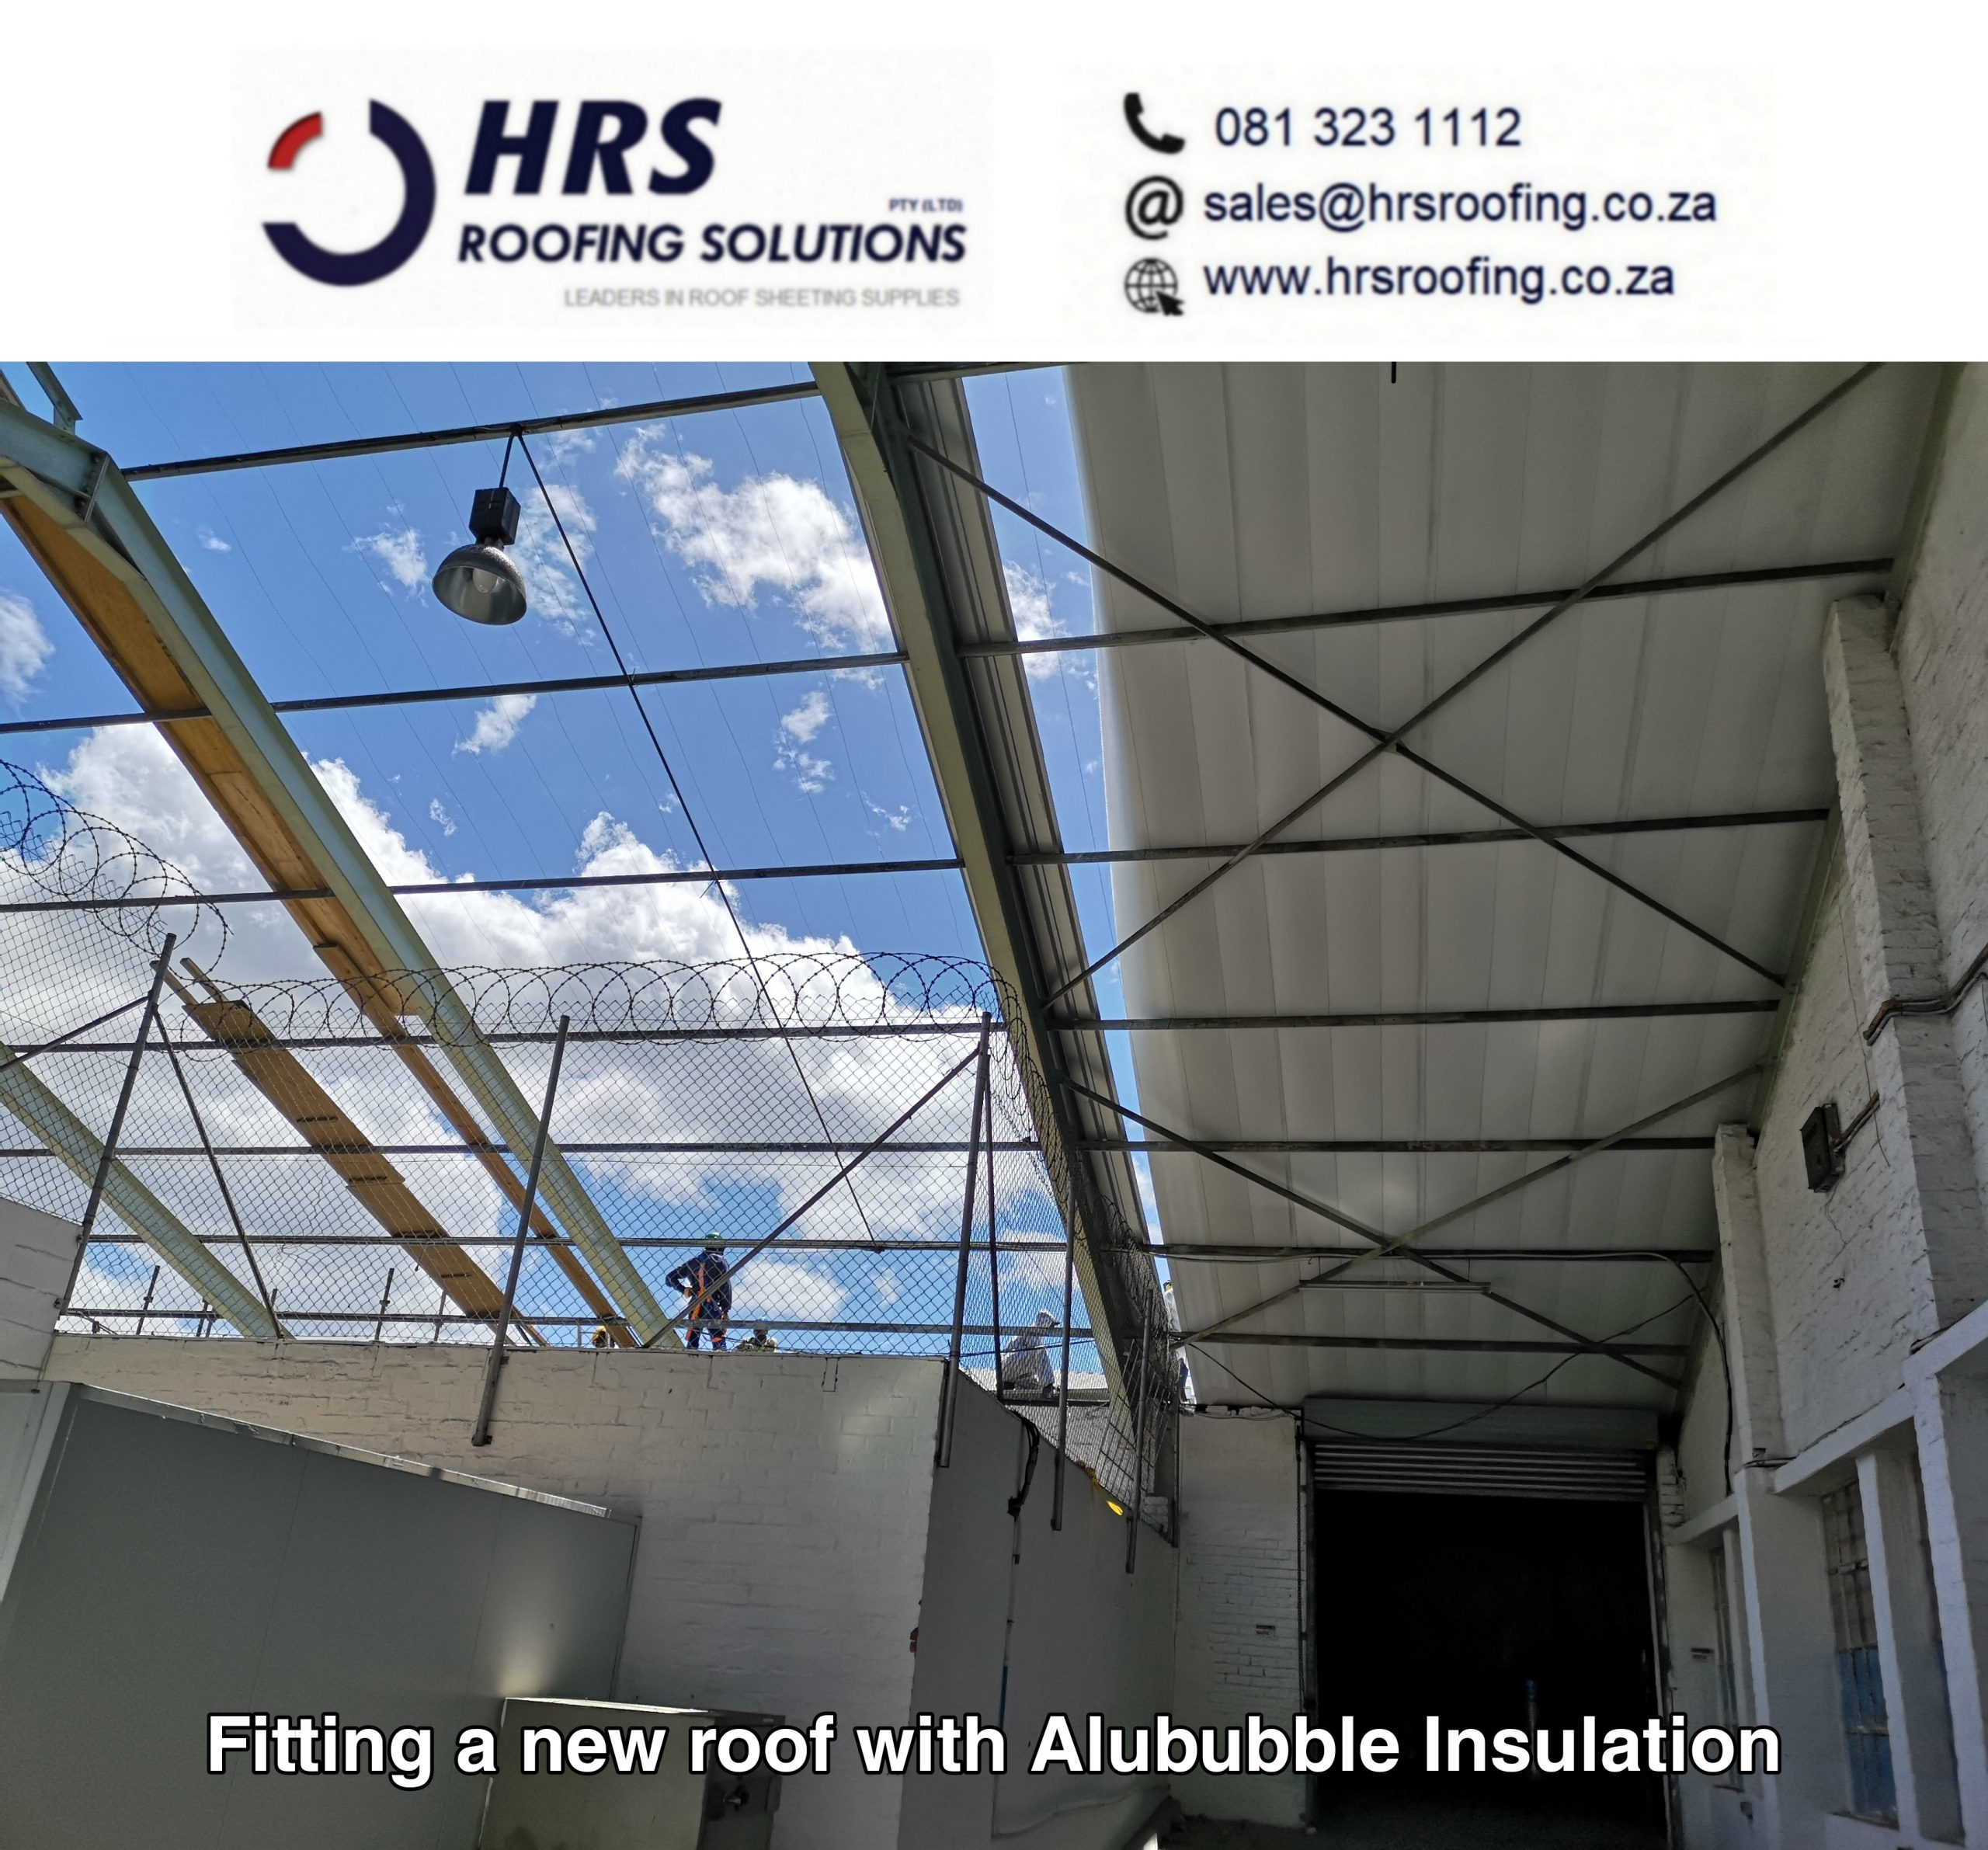 hrs roofing solutions ibr springlock 700 clip lock colorbond roof sheet supplier 1 scaled - Roofing Gallery